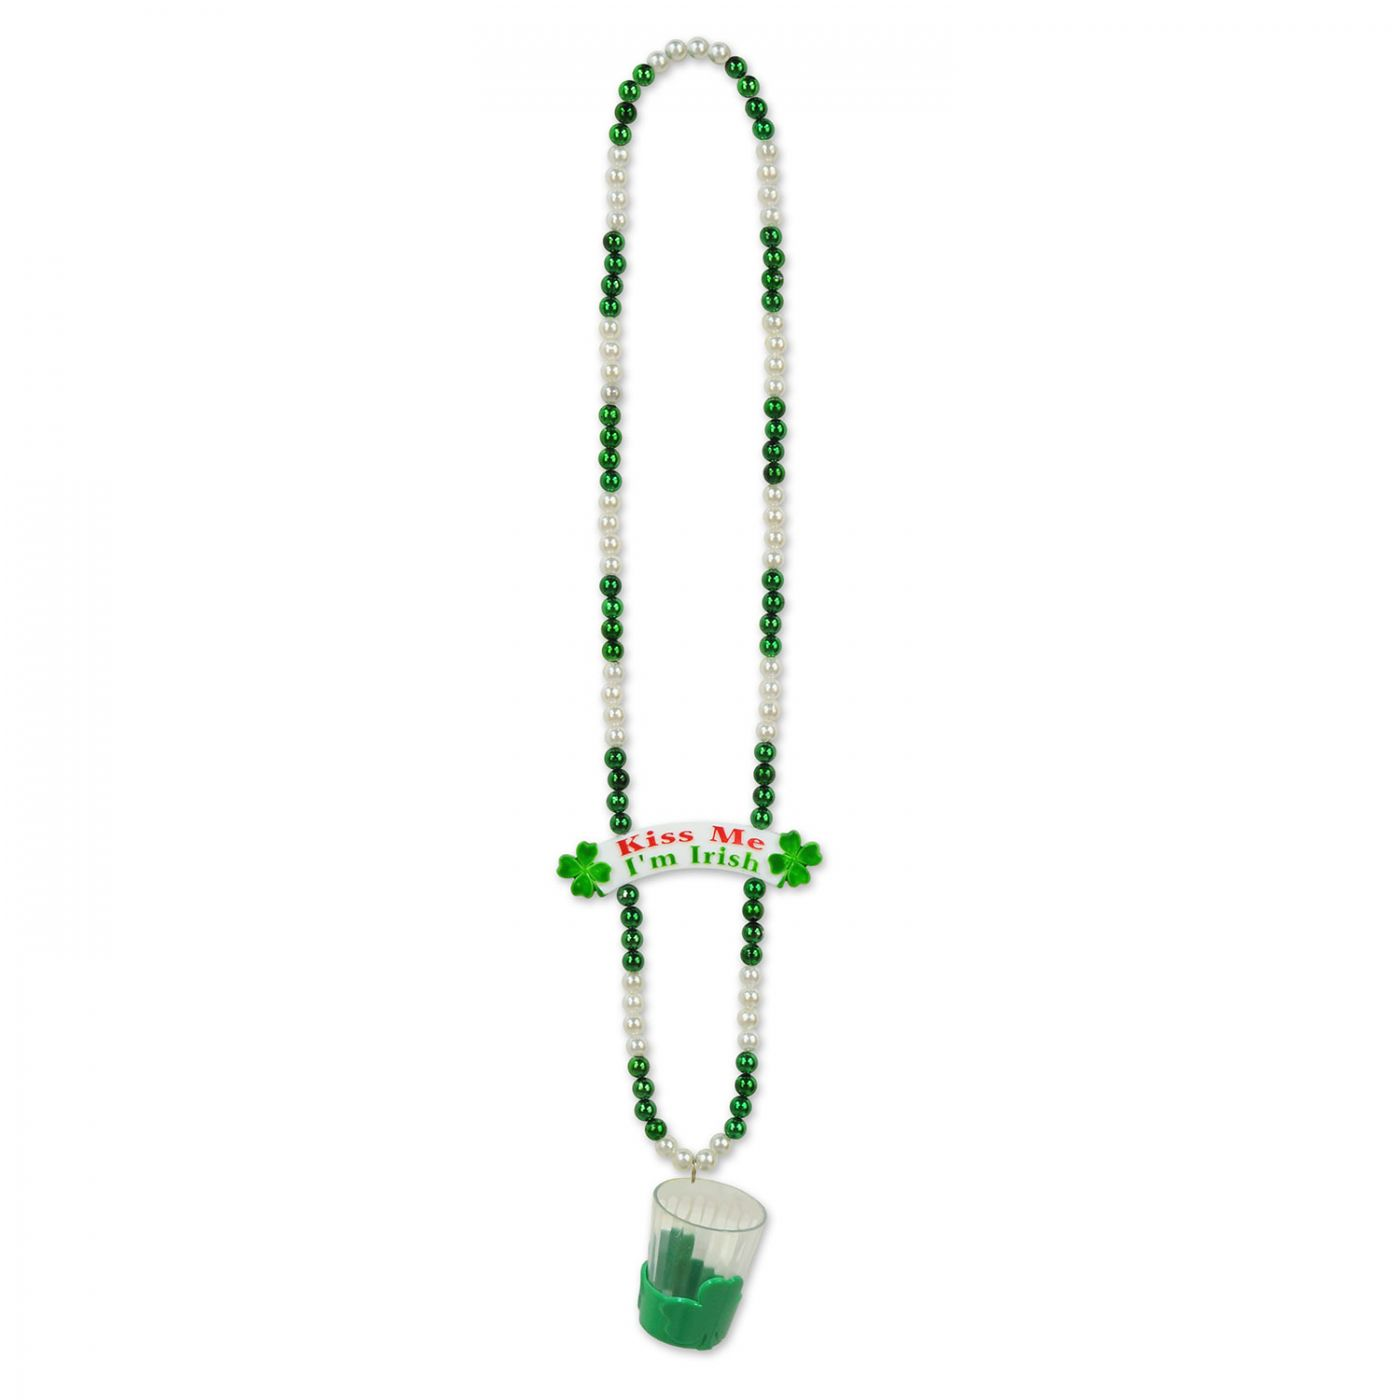 Image of Beads w/Shot Glass & Banner Bead